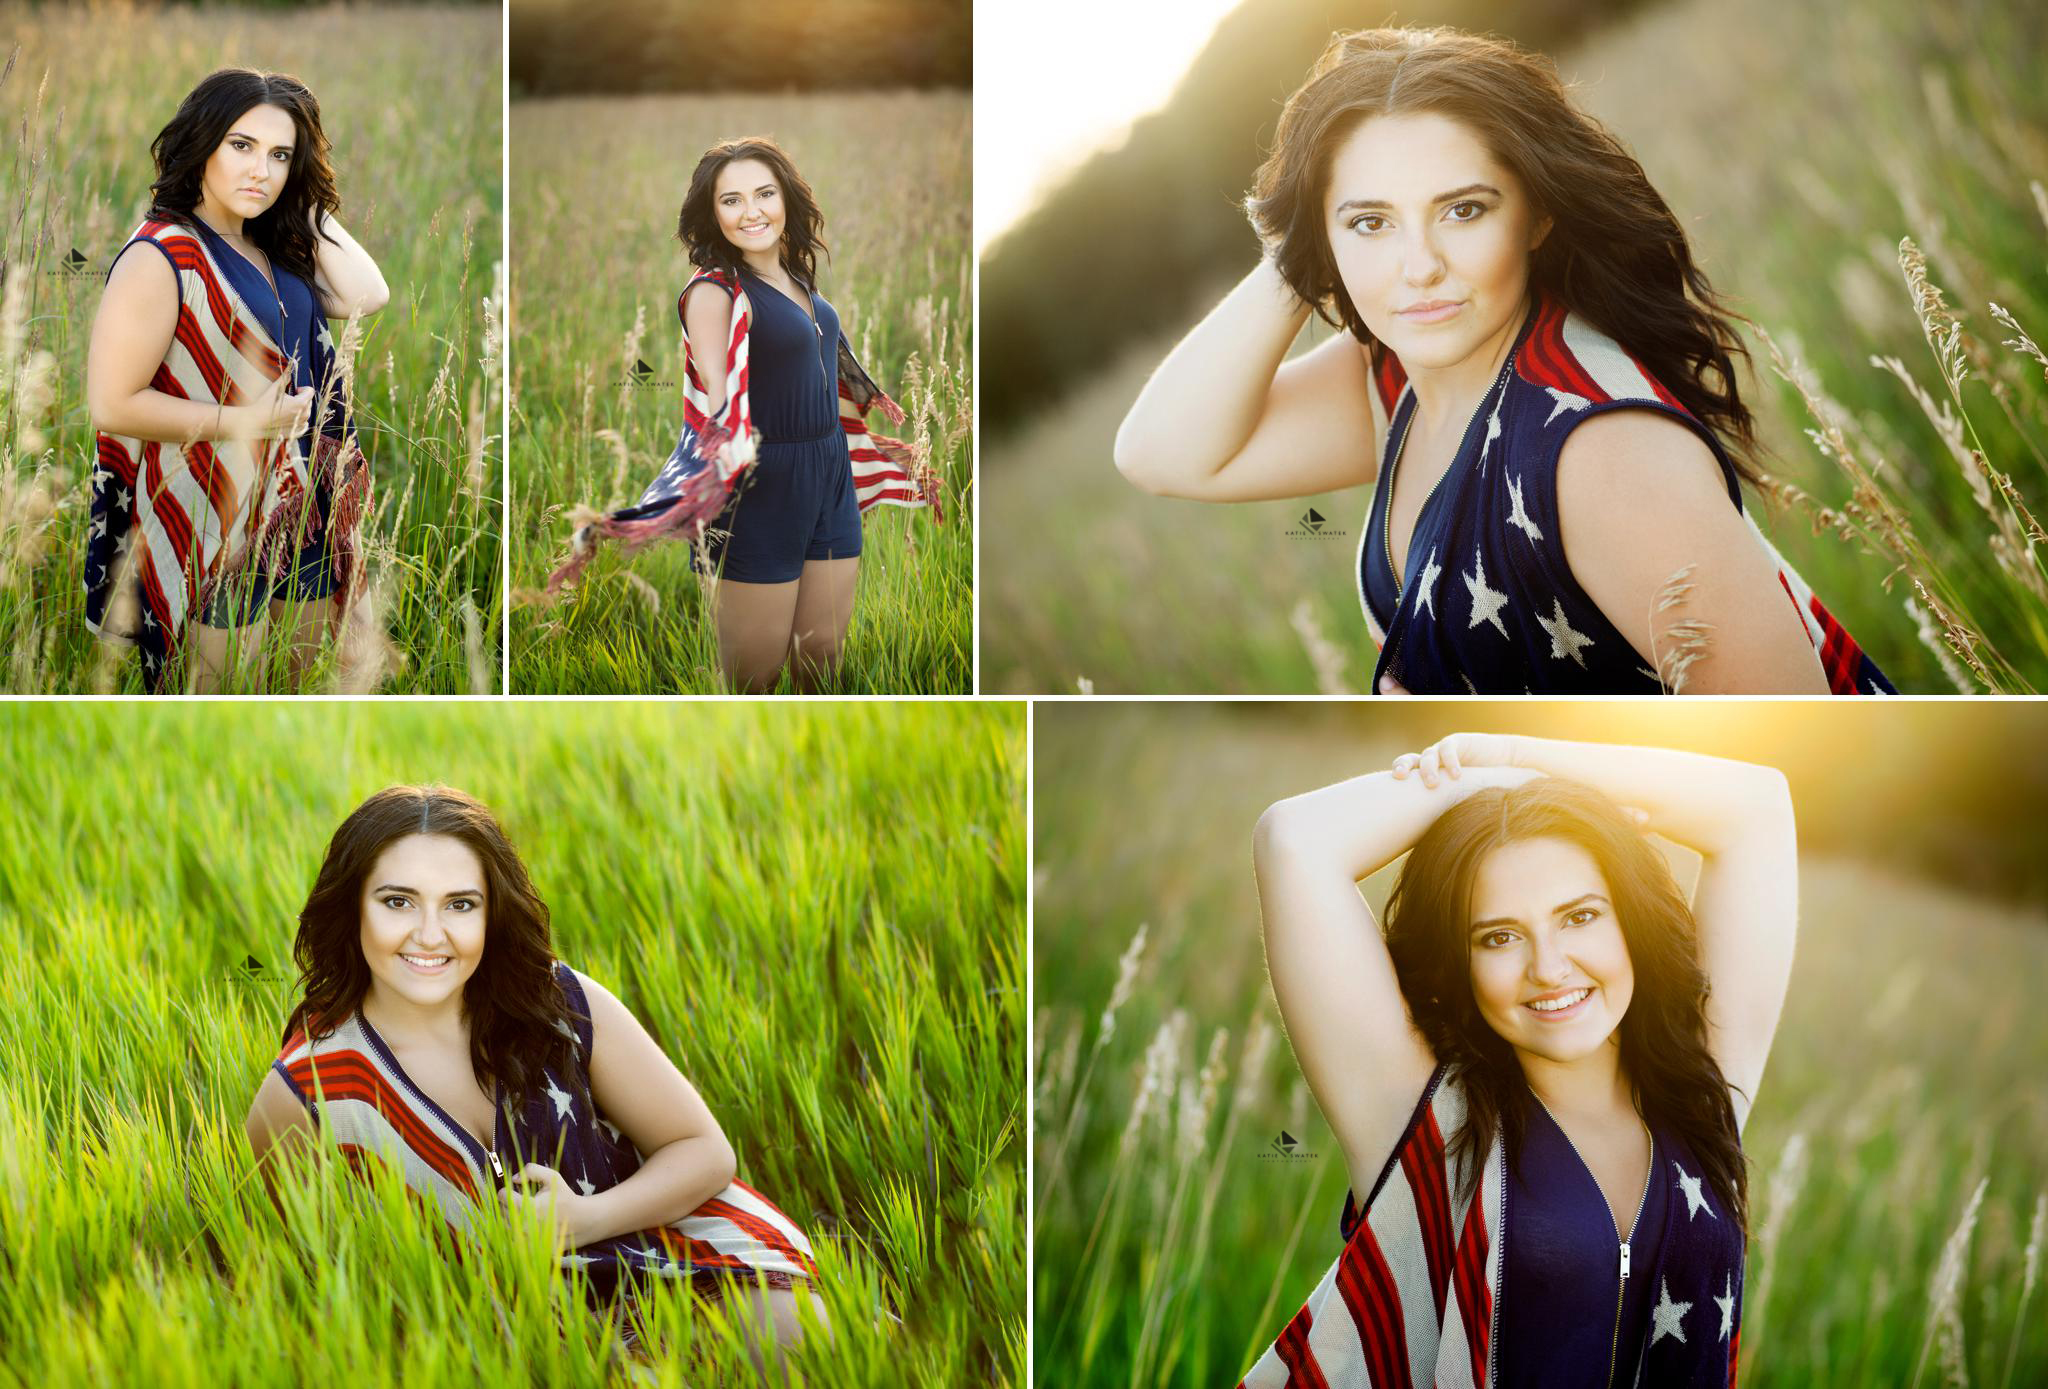 brunette senior girl in a blue romper with an American flag long crocheted vest sitting and standing in a tall grass field